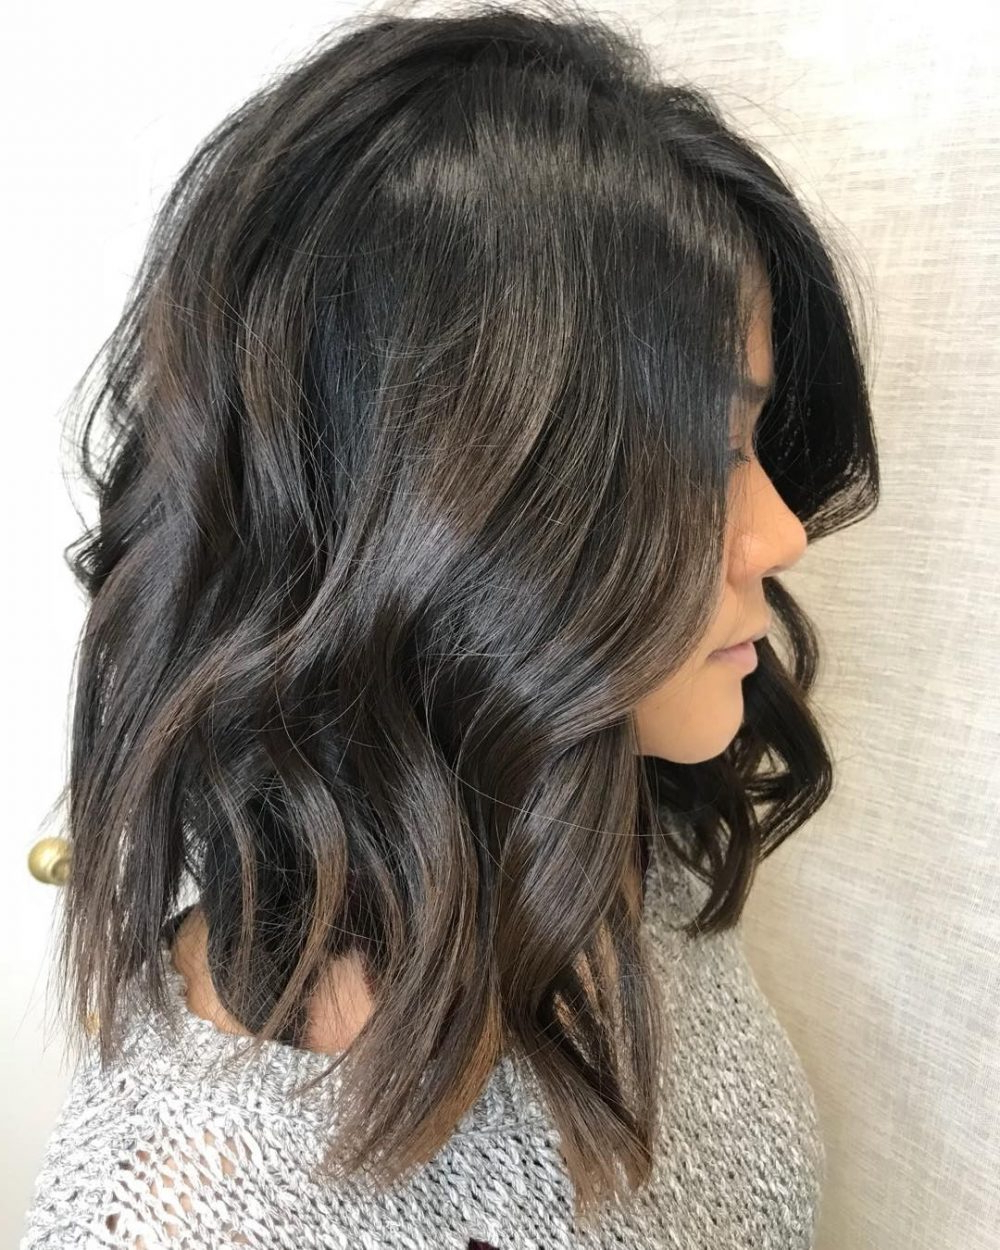 2017 Inverted Bob Medium Haircuts In 40 Gorgeous And Easy Medium To Shoulder Length Bob Haircuts (View 2 of 20)